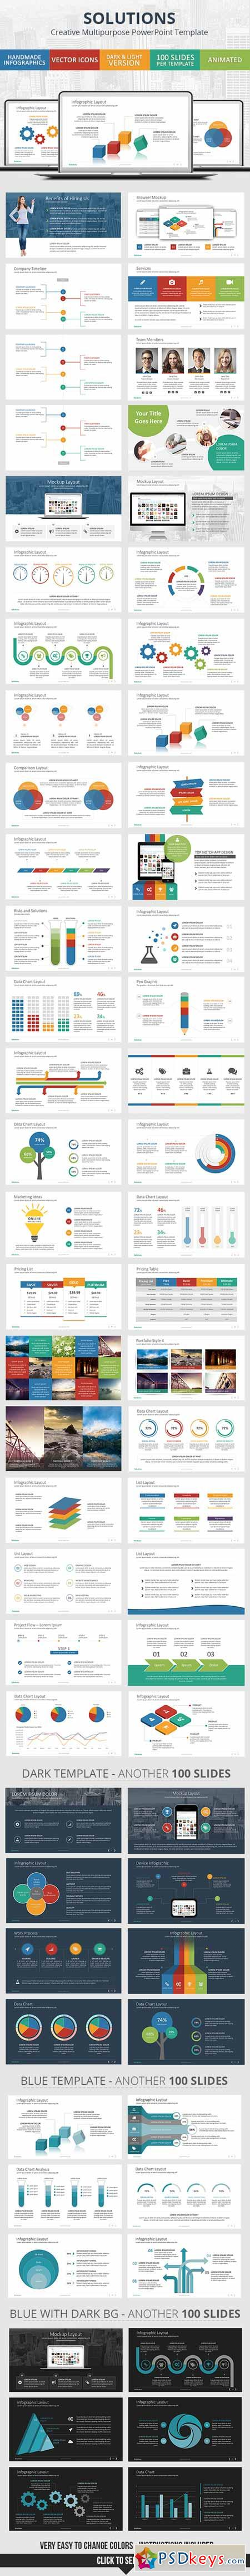 Solutions - PowerPoint Presentation Template 10284842